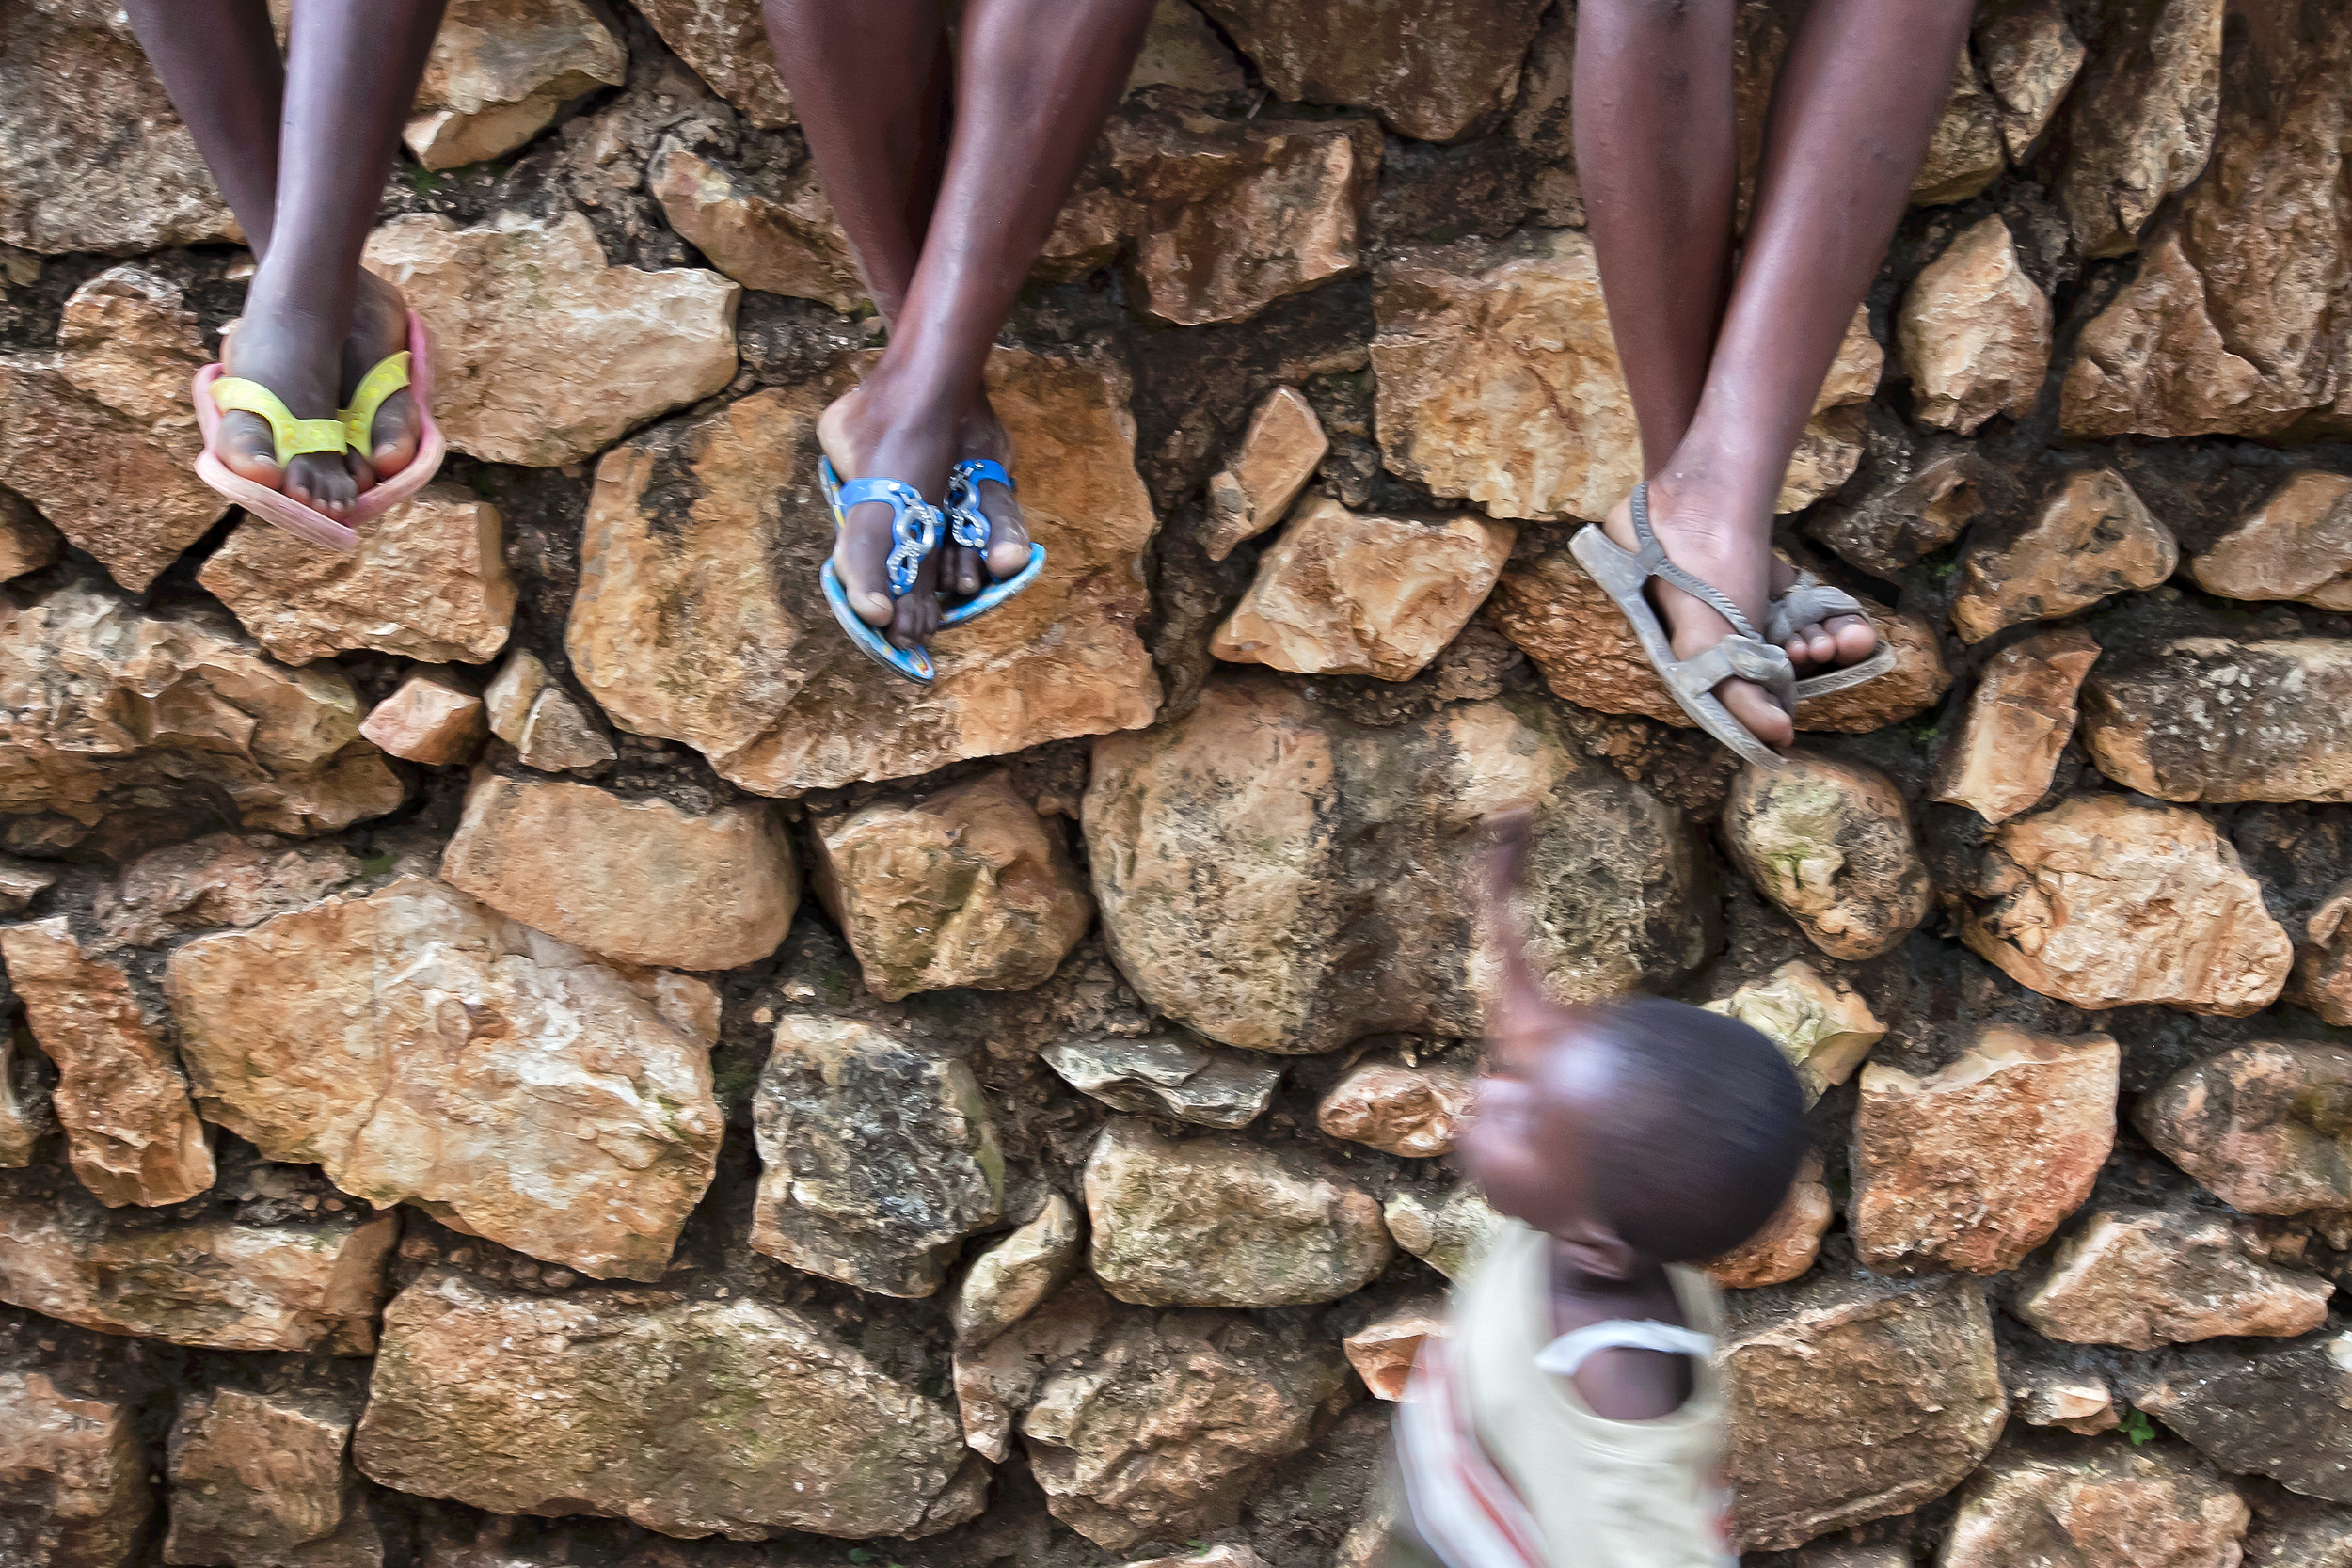 Shoes worn by Haitian children are often worn or broken.